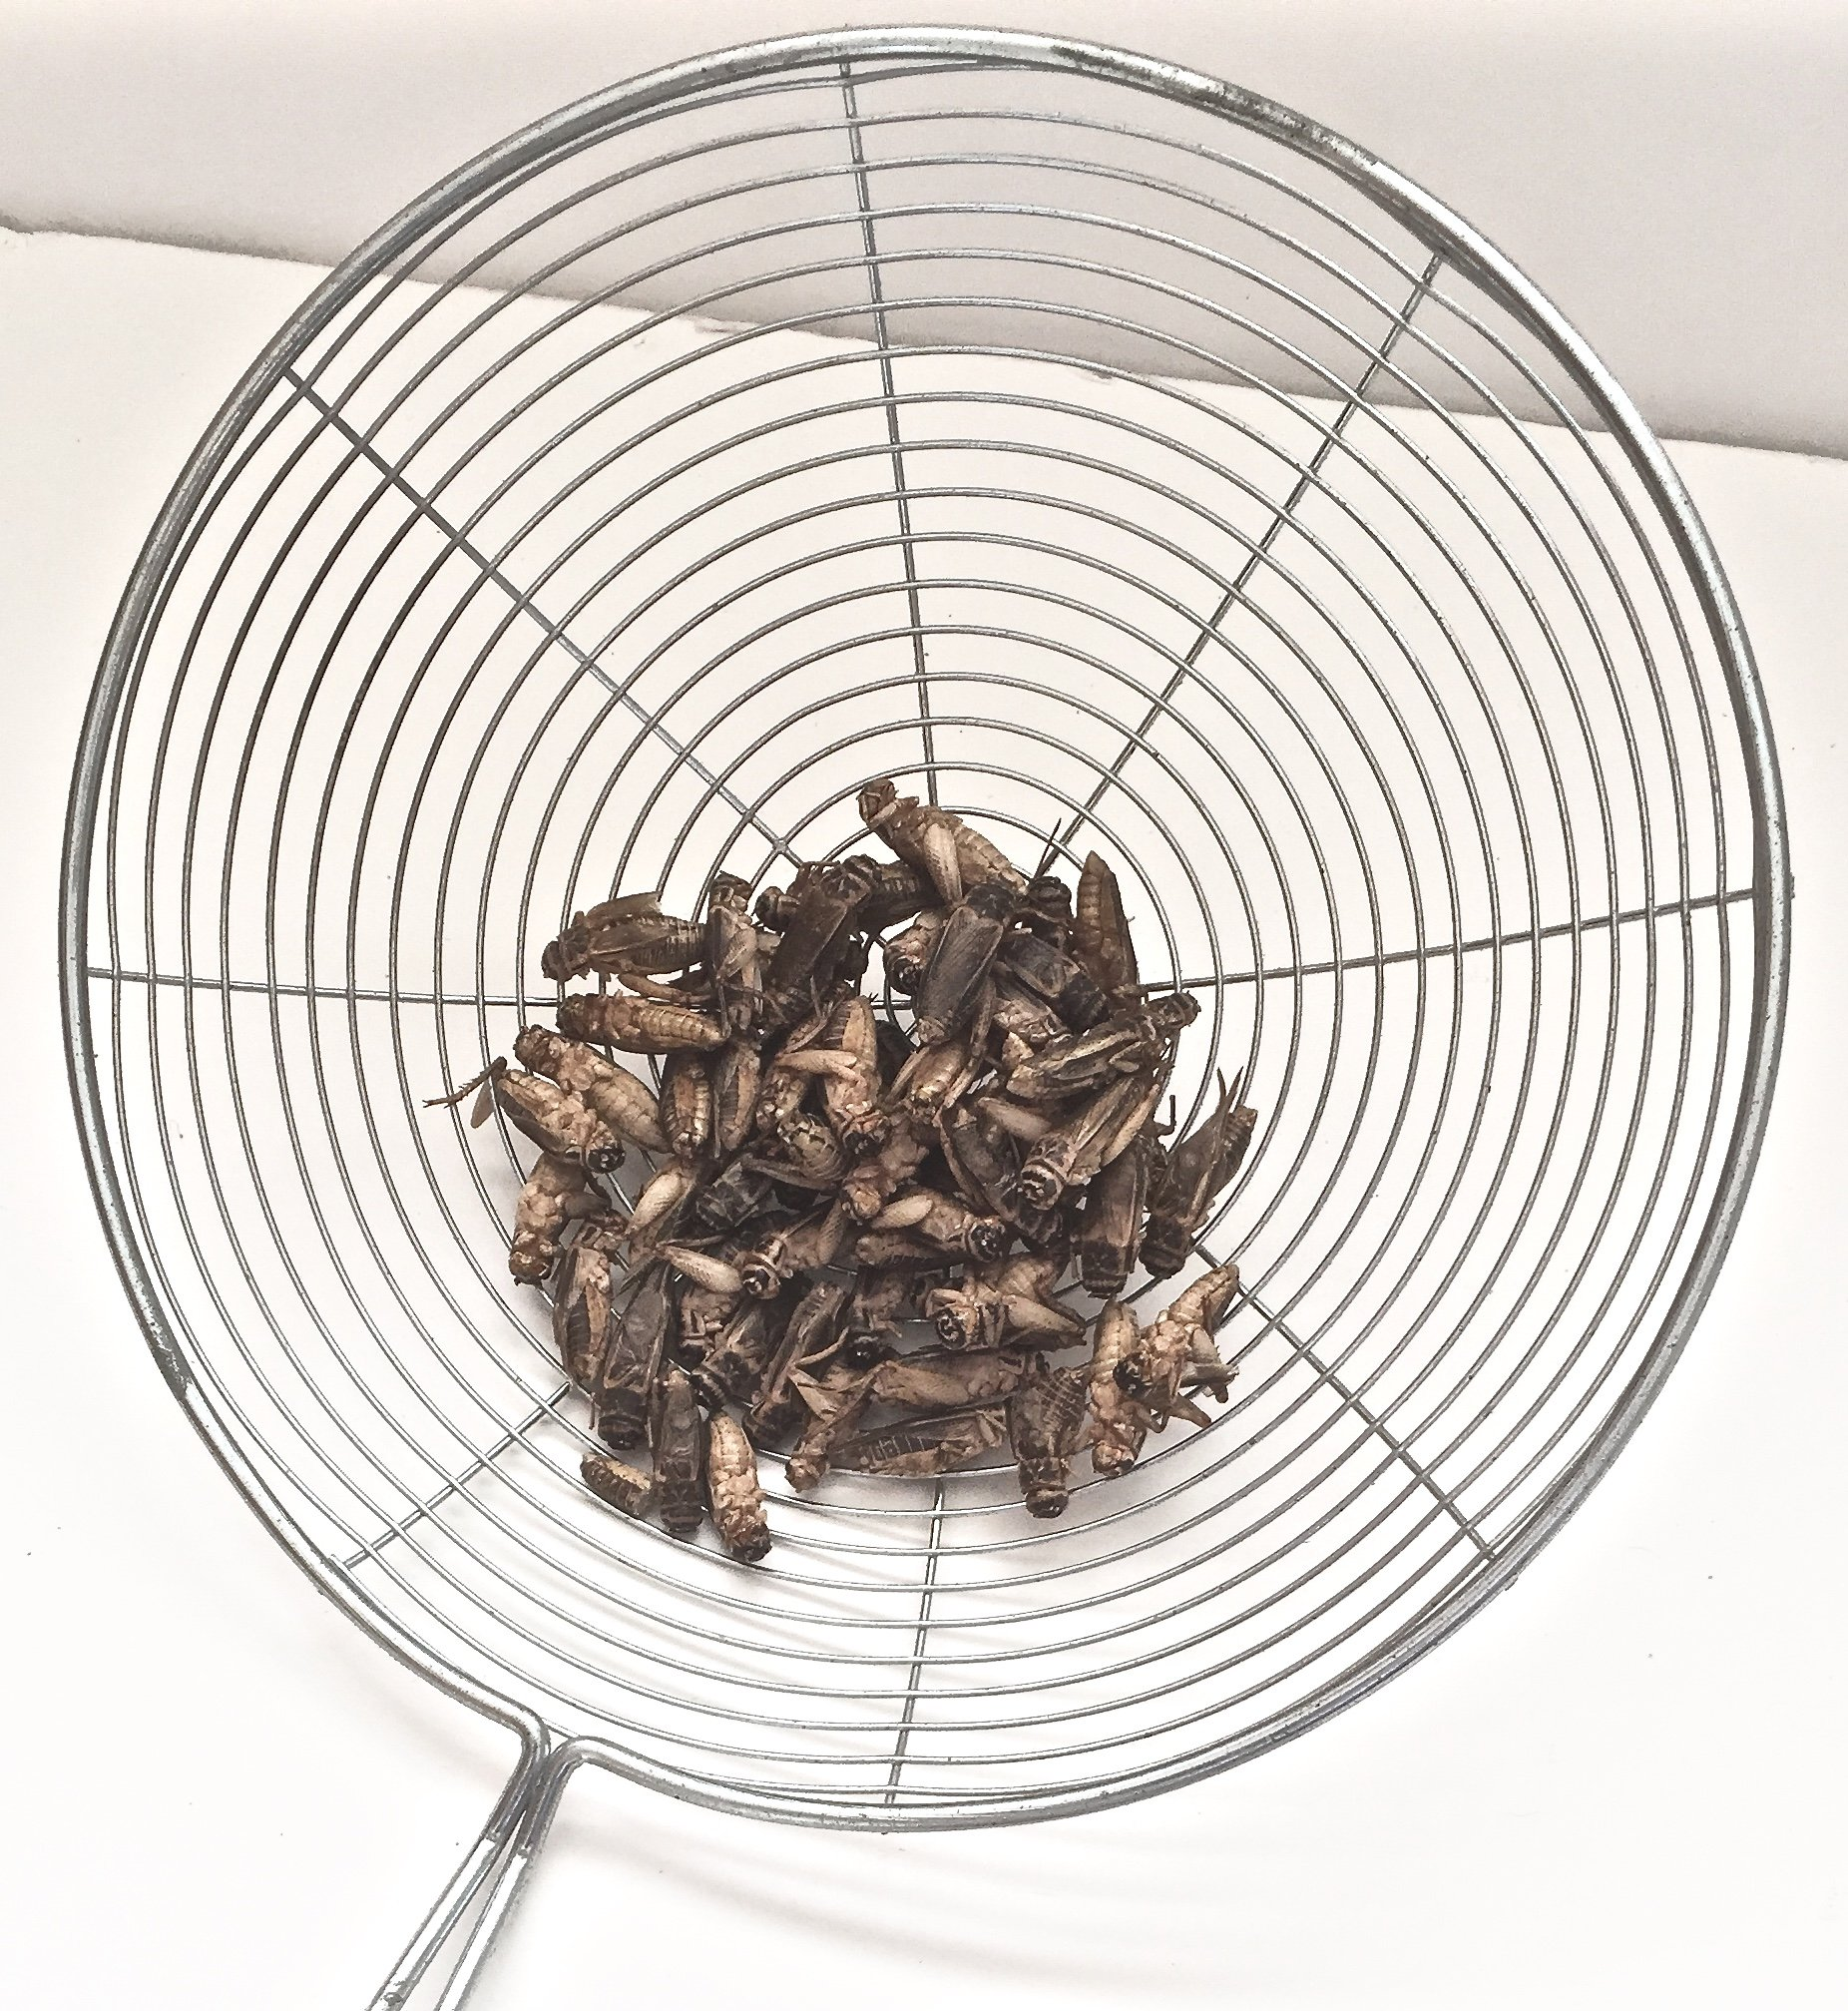 FREEZE DRIED CRICKETS (SIFTED!) 8 OZ